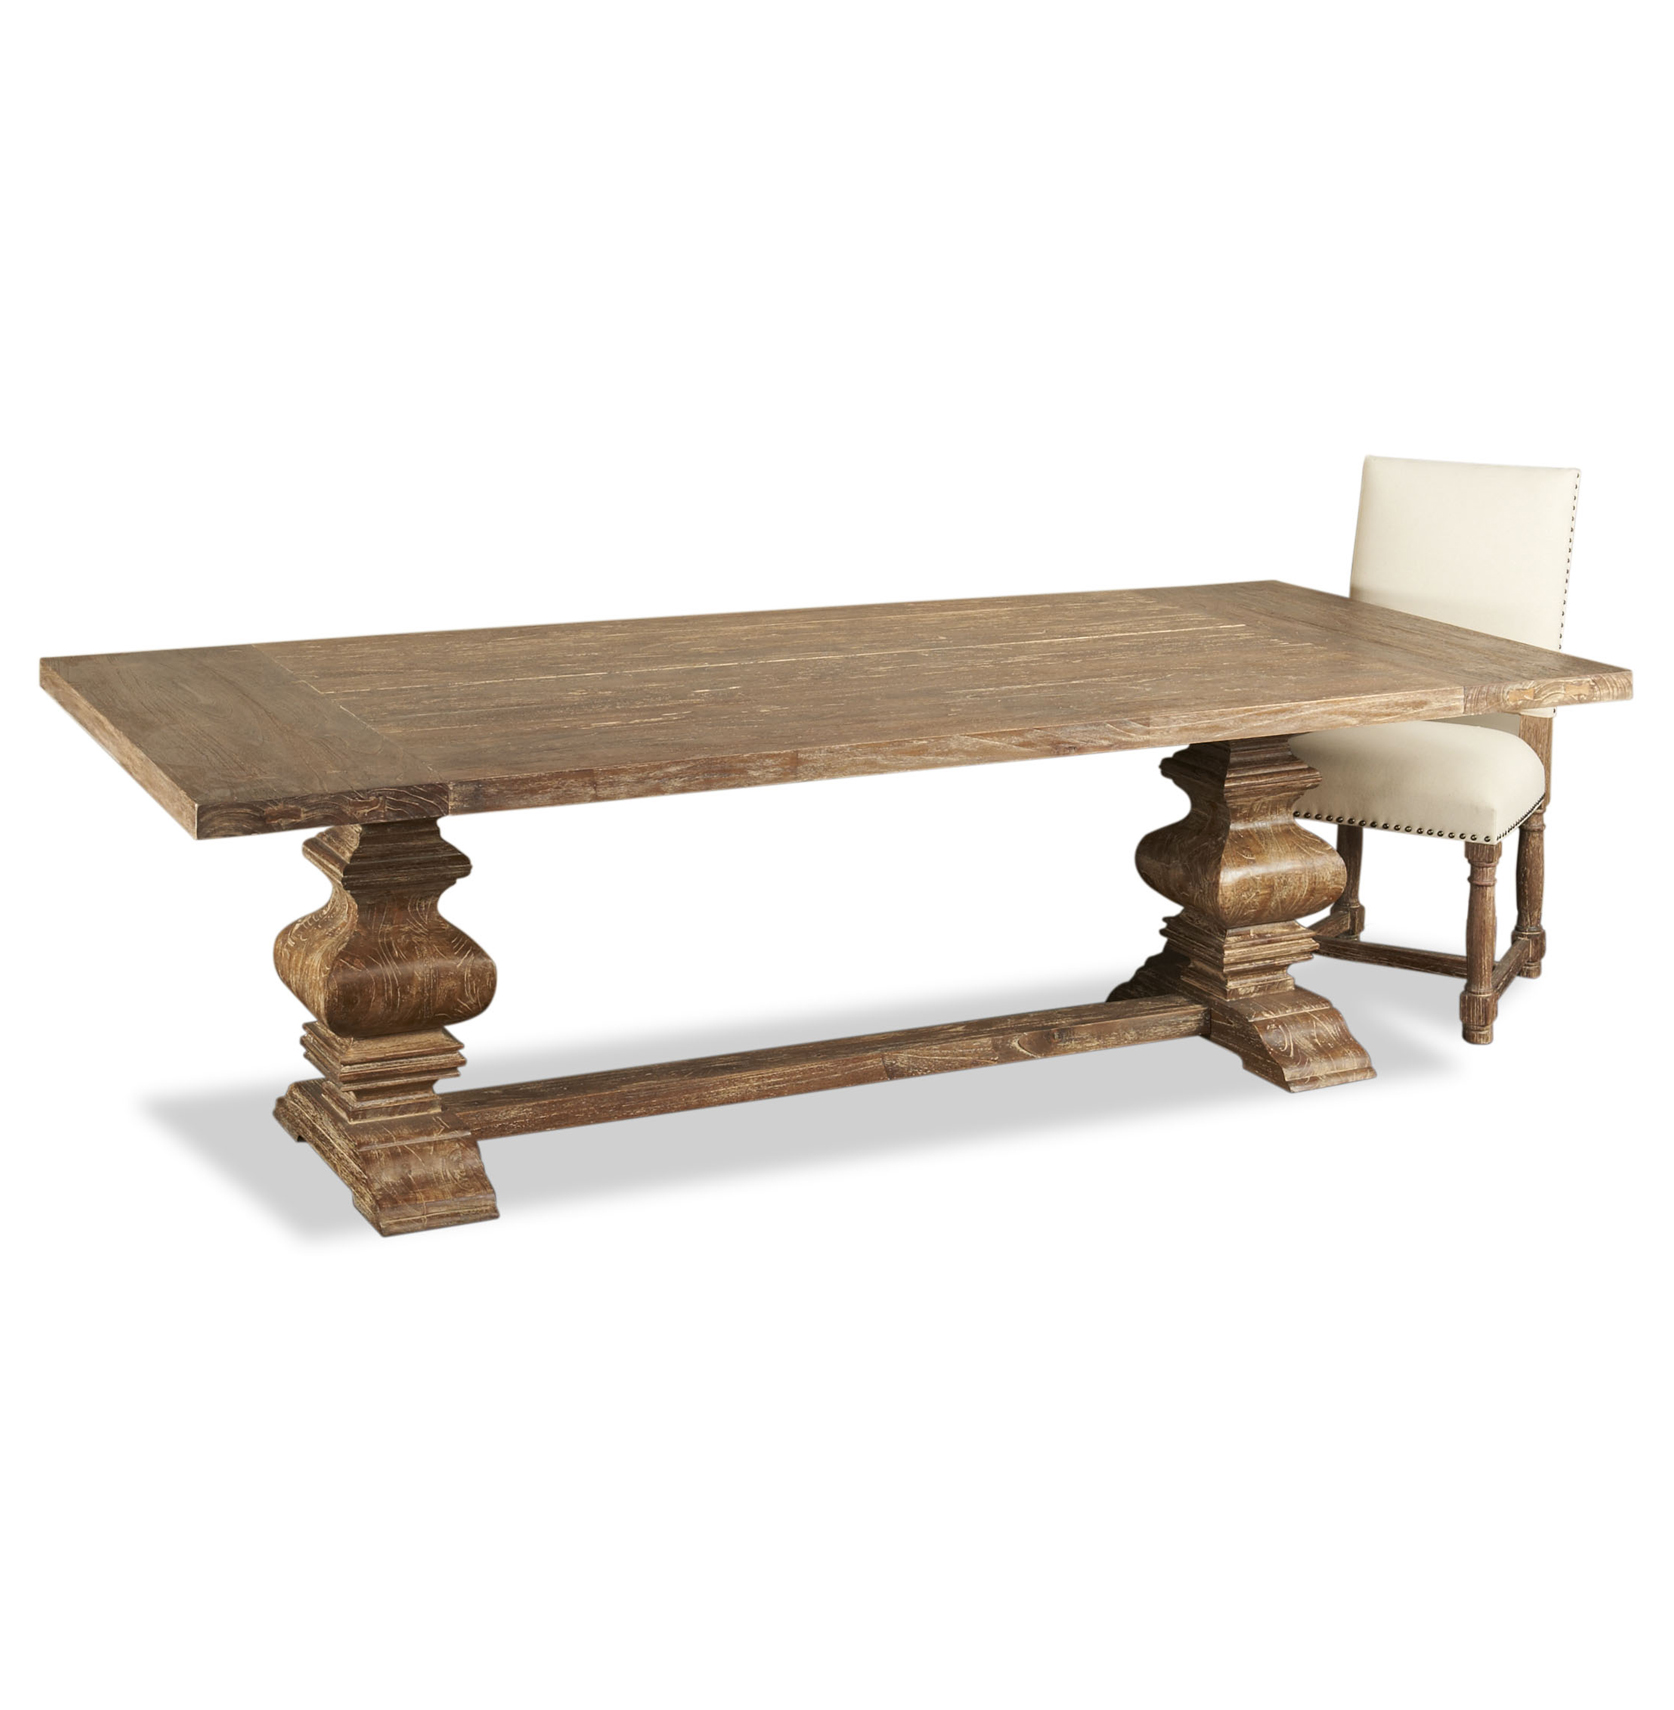 Sveti French Country Aged Wood Trestle Base Dining Table 98 L